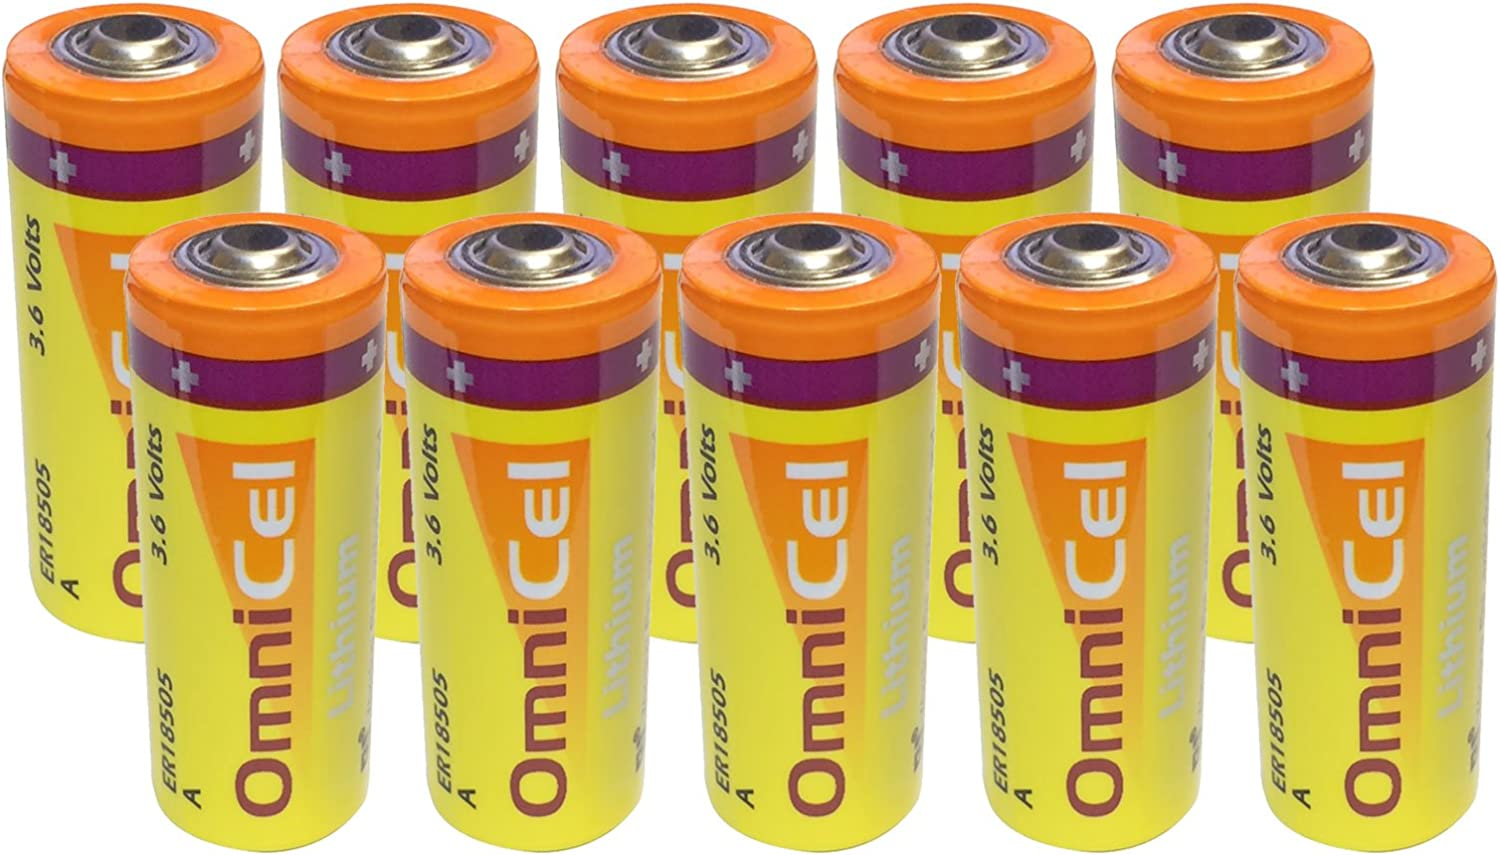 10x Omnicel ER18505 3.6V 3.8Ah Size A Lithium Battery For Computer RAM, CMOS Circuit memory backup power, Medical equipment, Radiocommunication, Numerical control machine tool, Taximeter